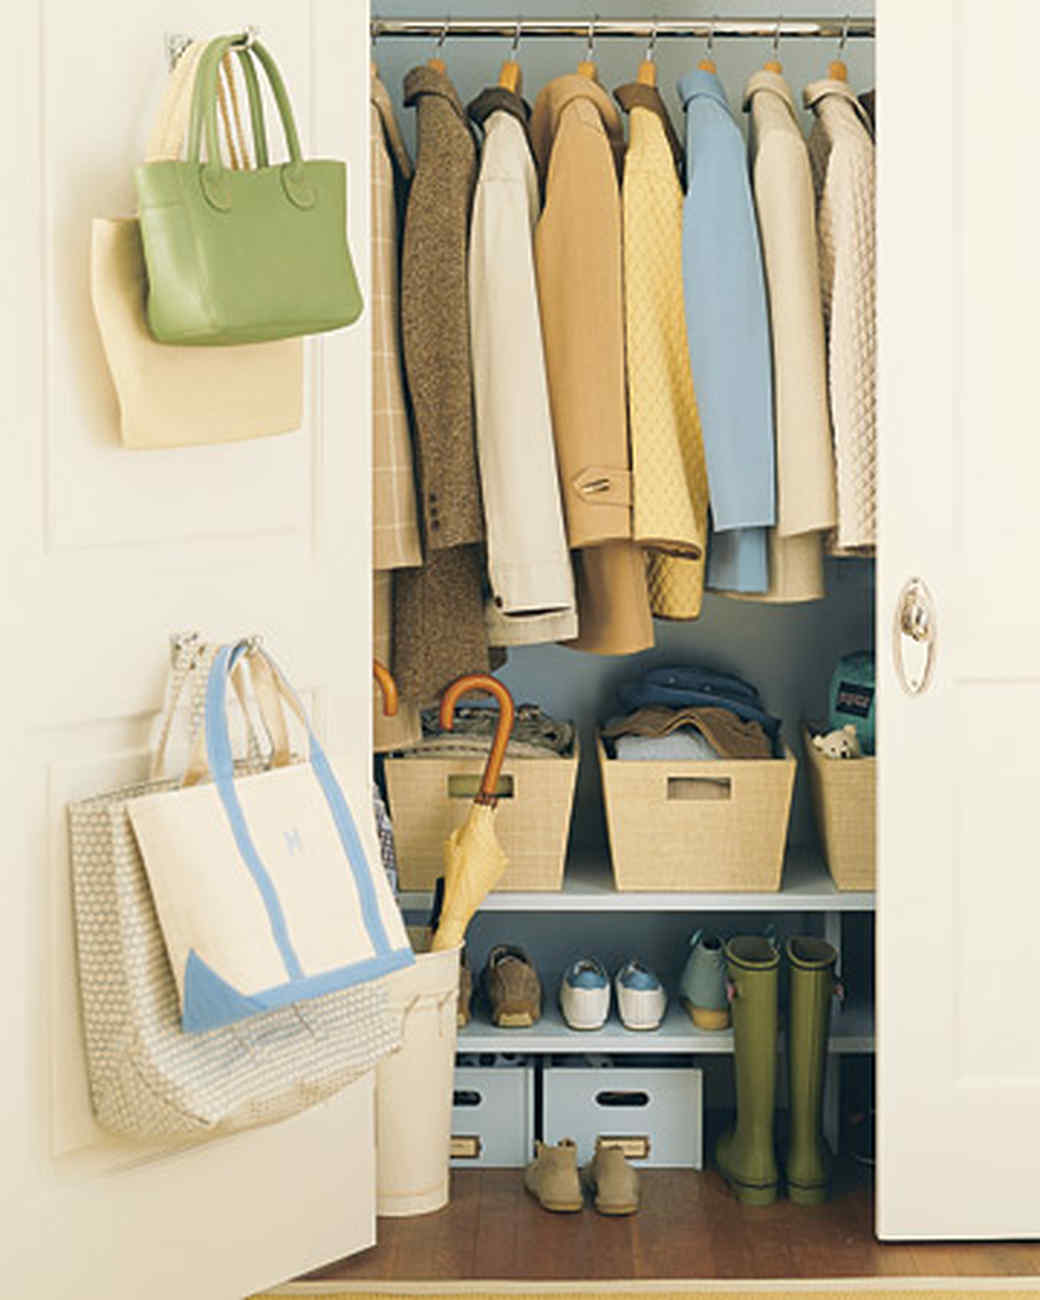 Linen Closet Organizer Systems Save Space In Closets Hallways And More Martha Stewart